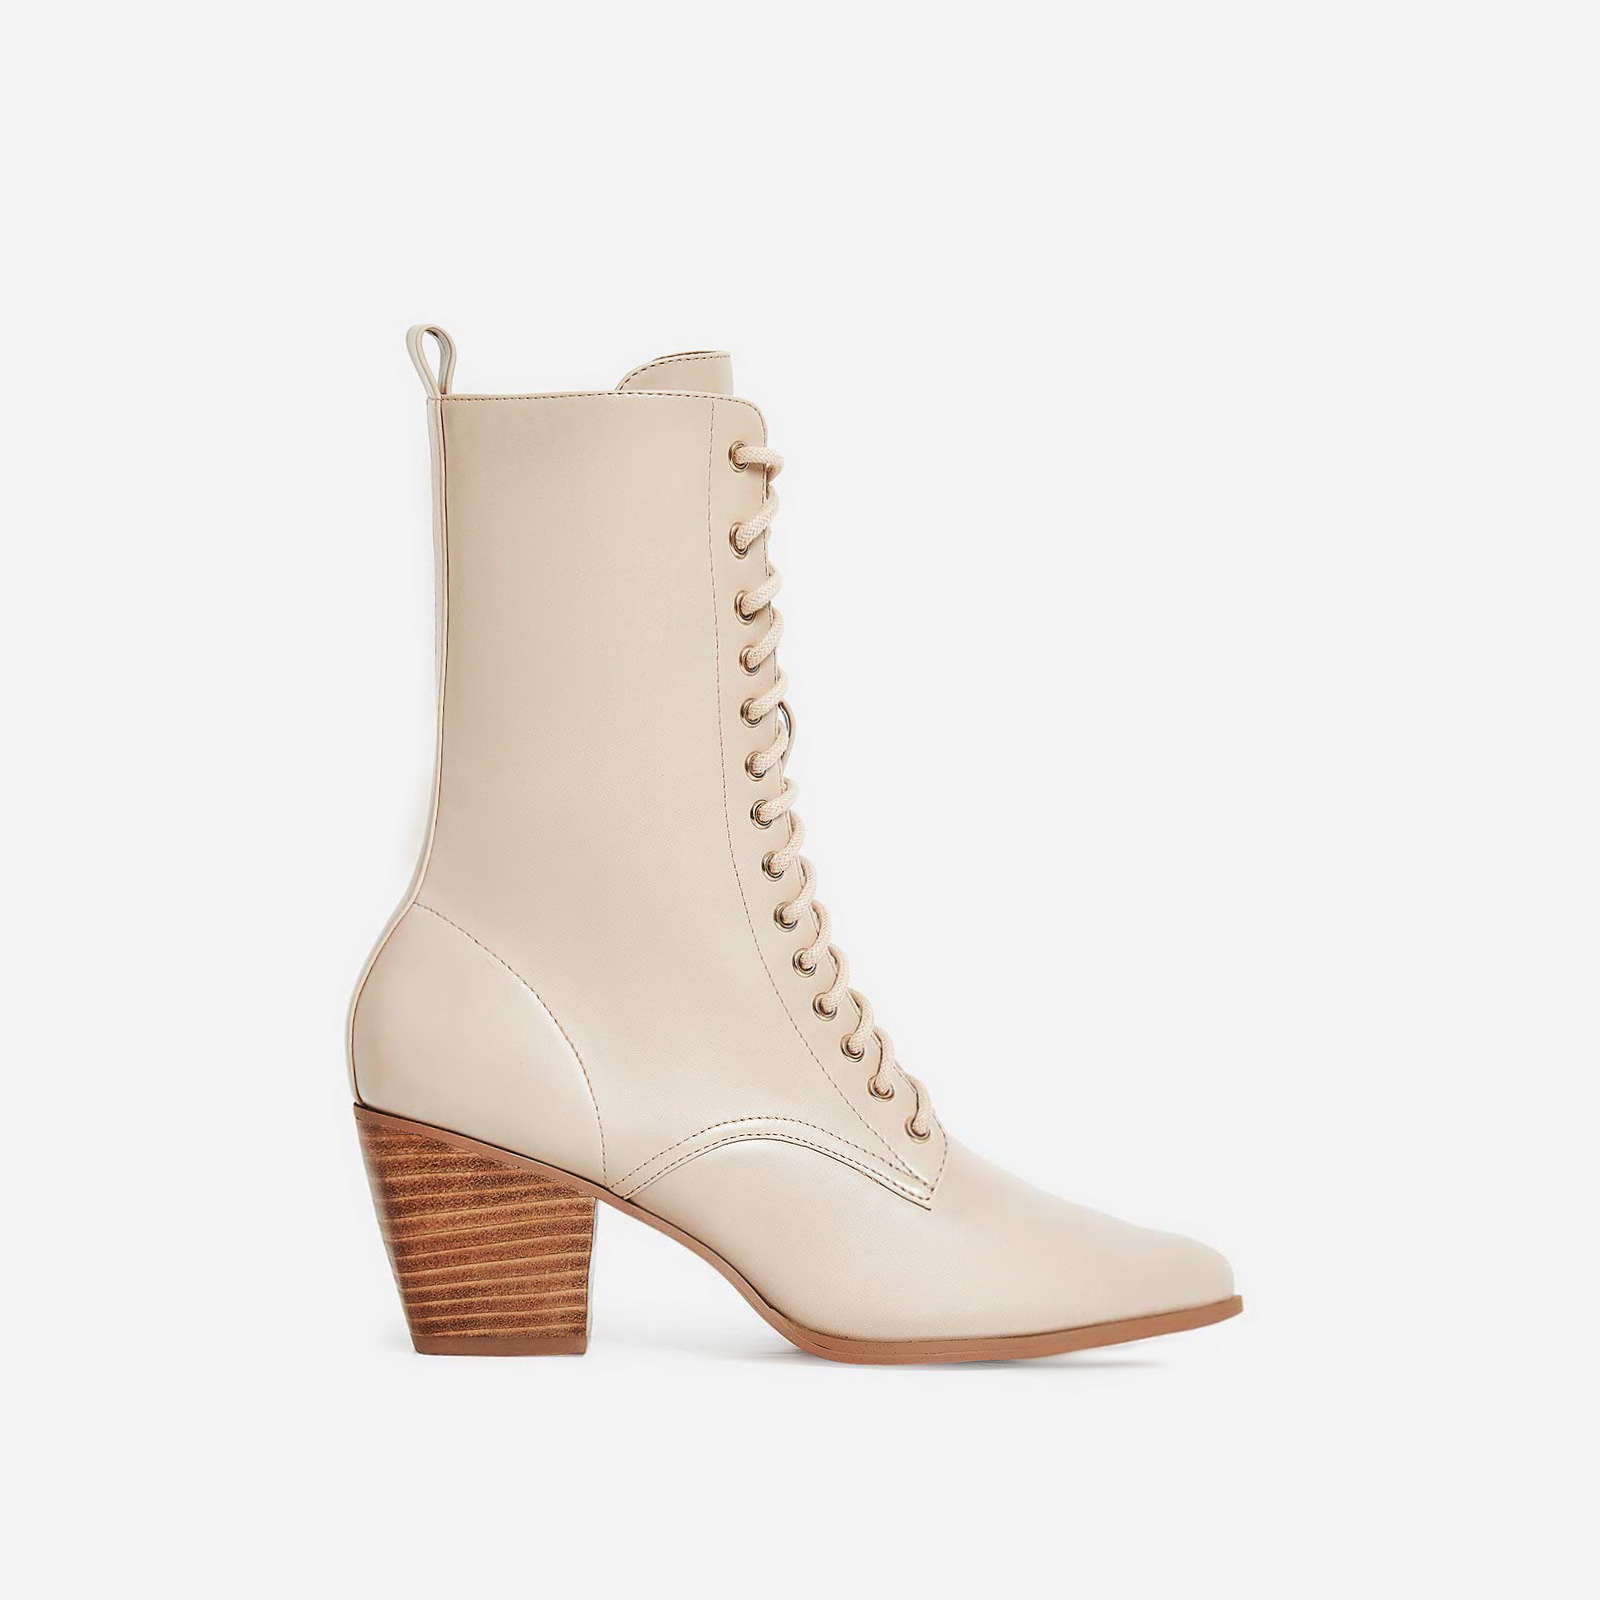 Corley Lace Up Ankle Boot In Nude Faux Leather